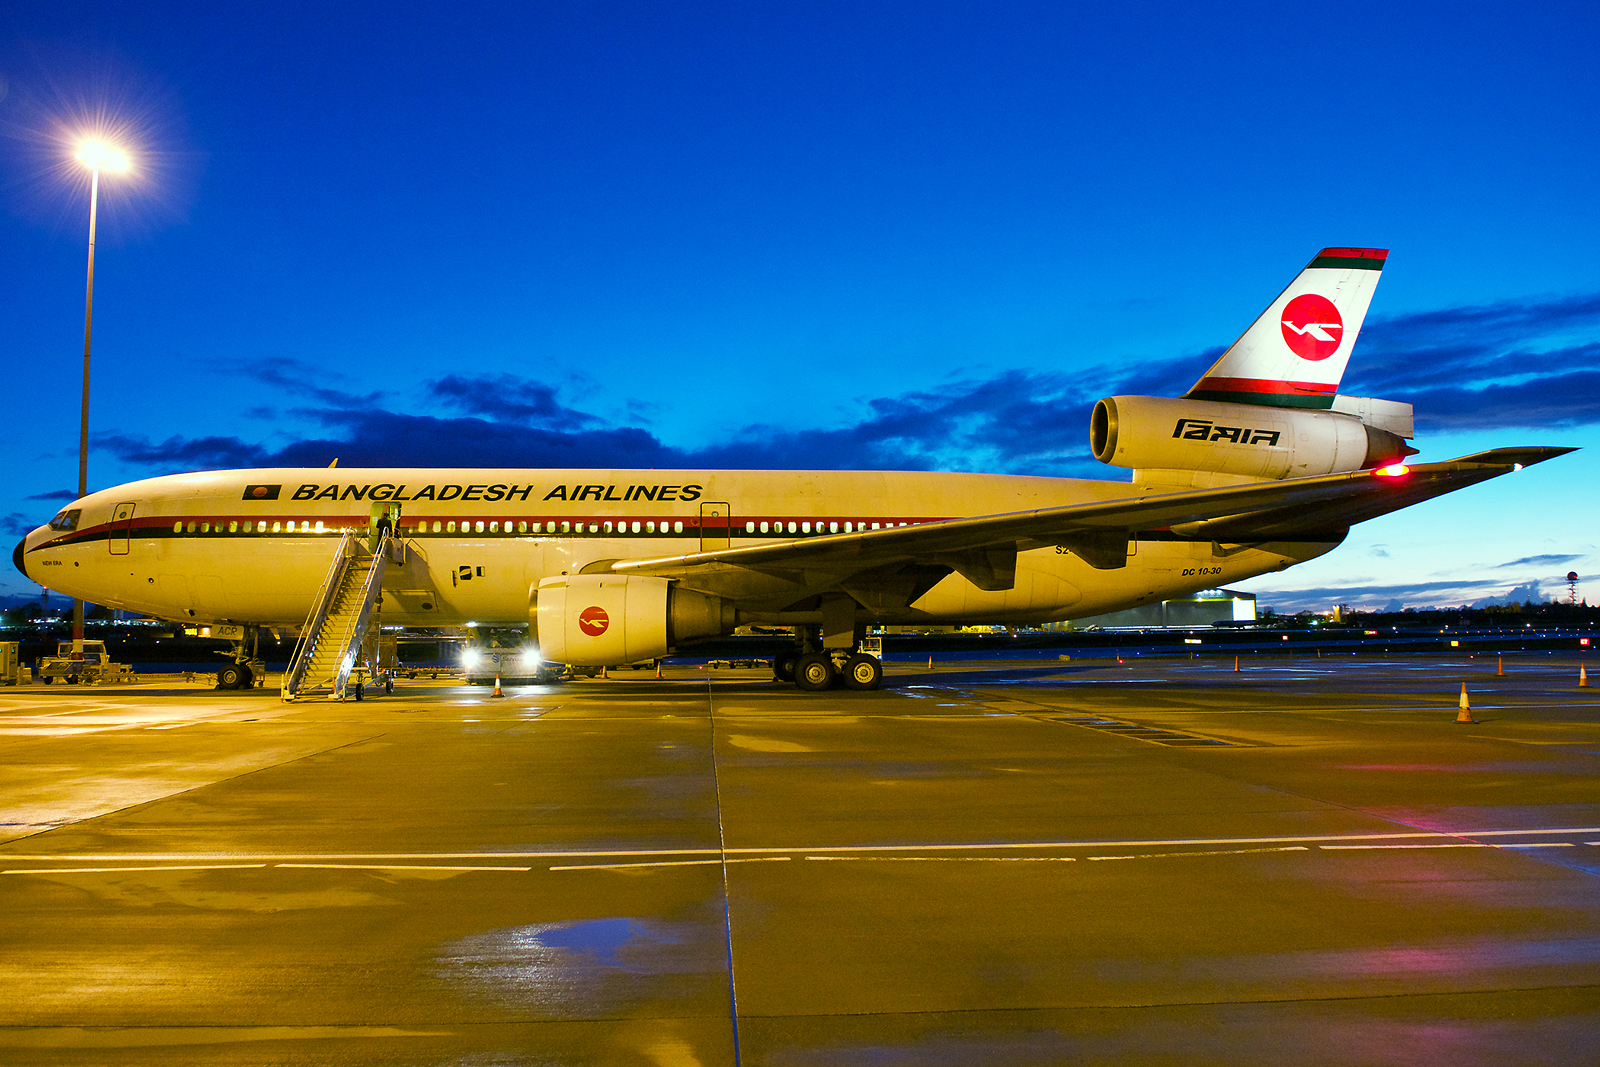 End of the line for the McDonnell Douglas DC-10